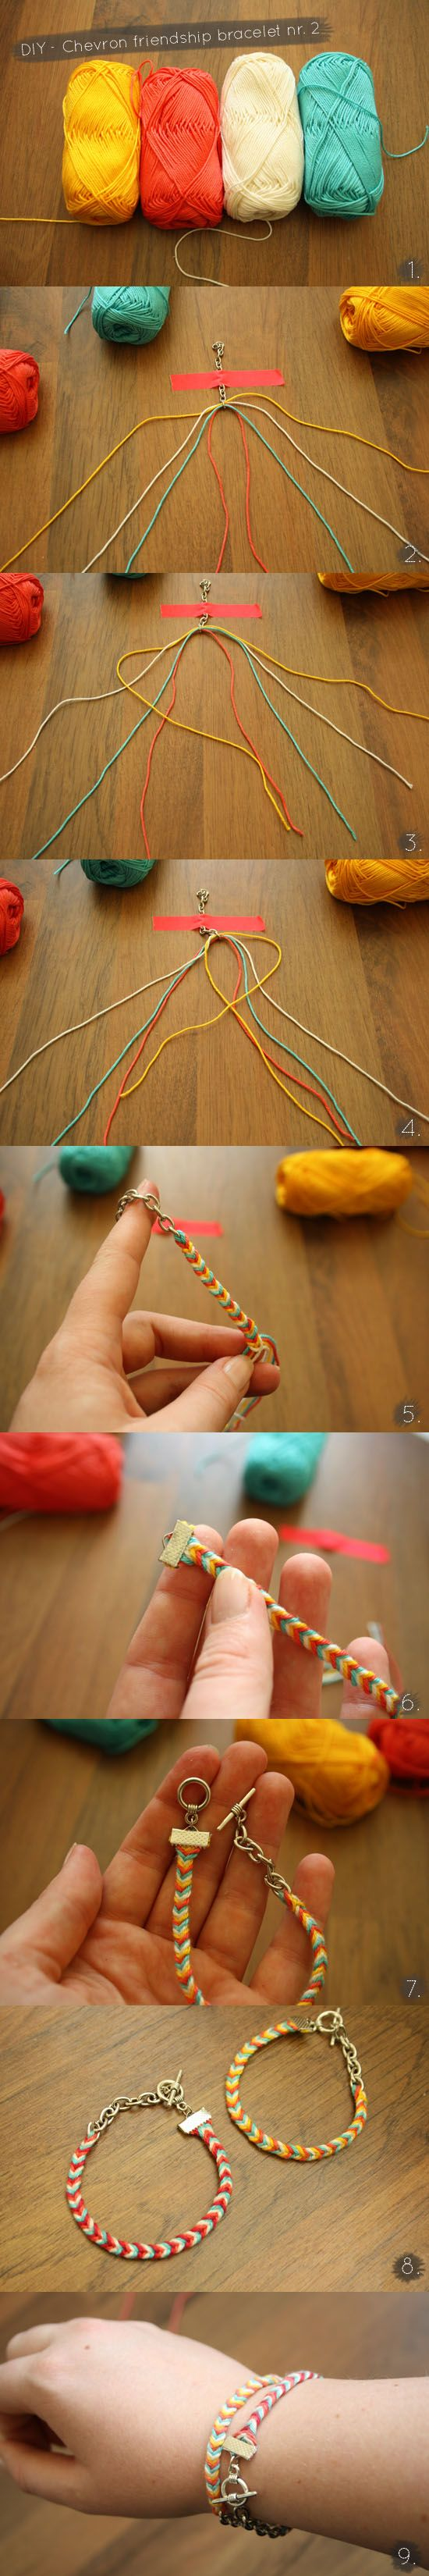 chevron friendship bracelet nr 2 tutorial, love the way they clasp it, so much easier than tying and retying every time you have to take it off and put it back on